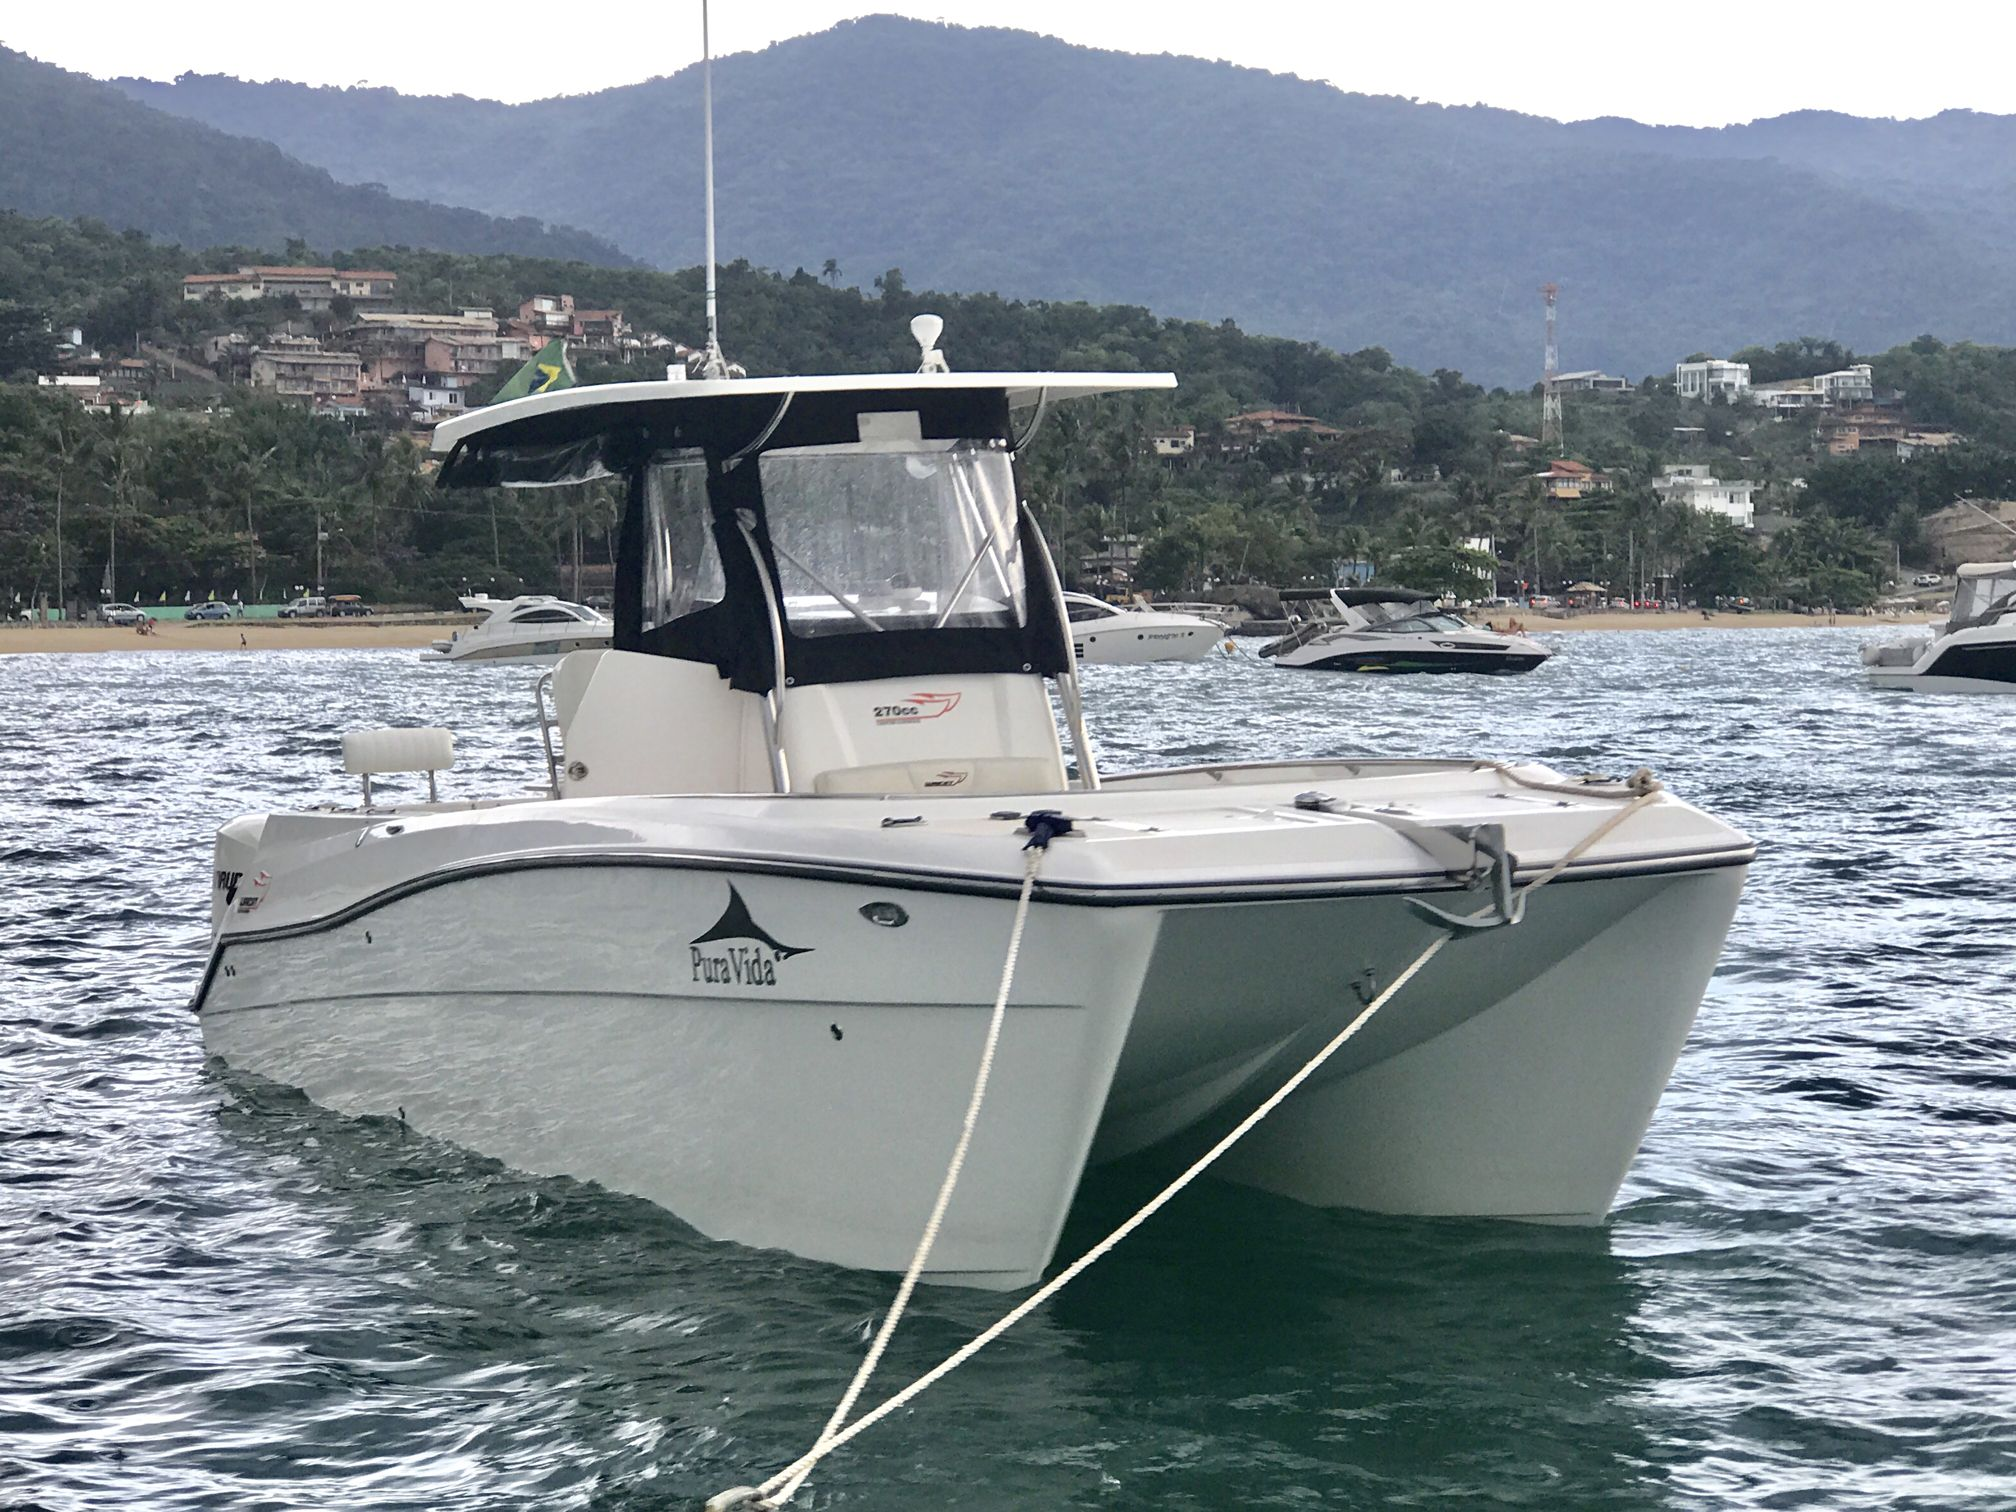 Waicat Power Catamarans 270 cc